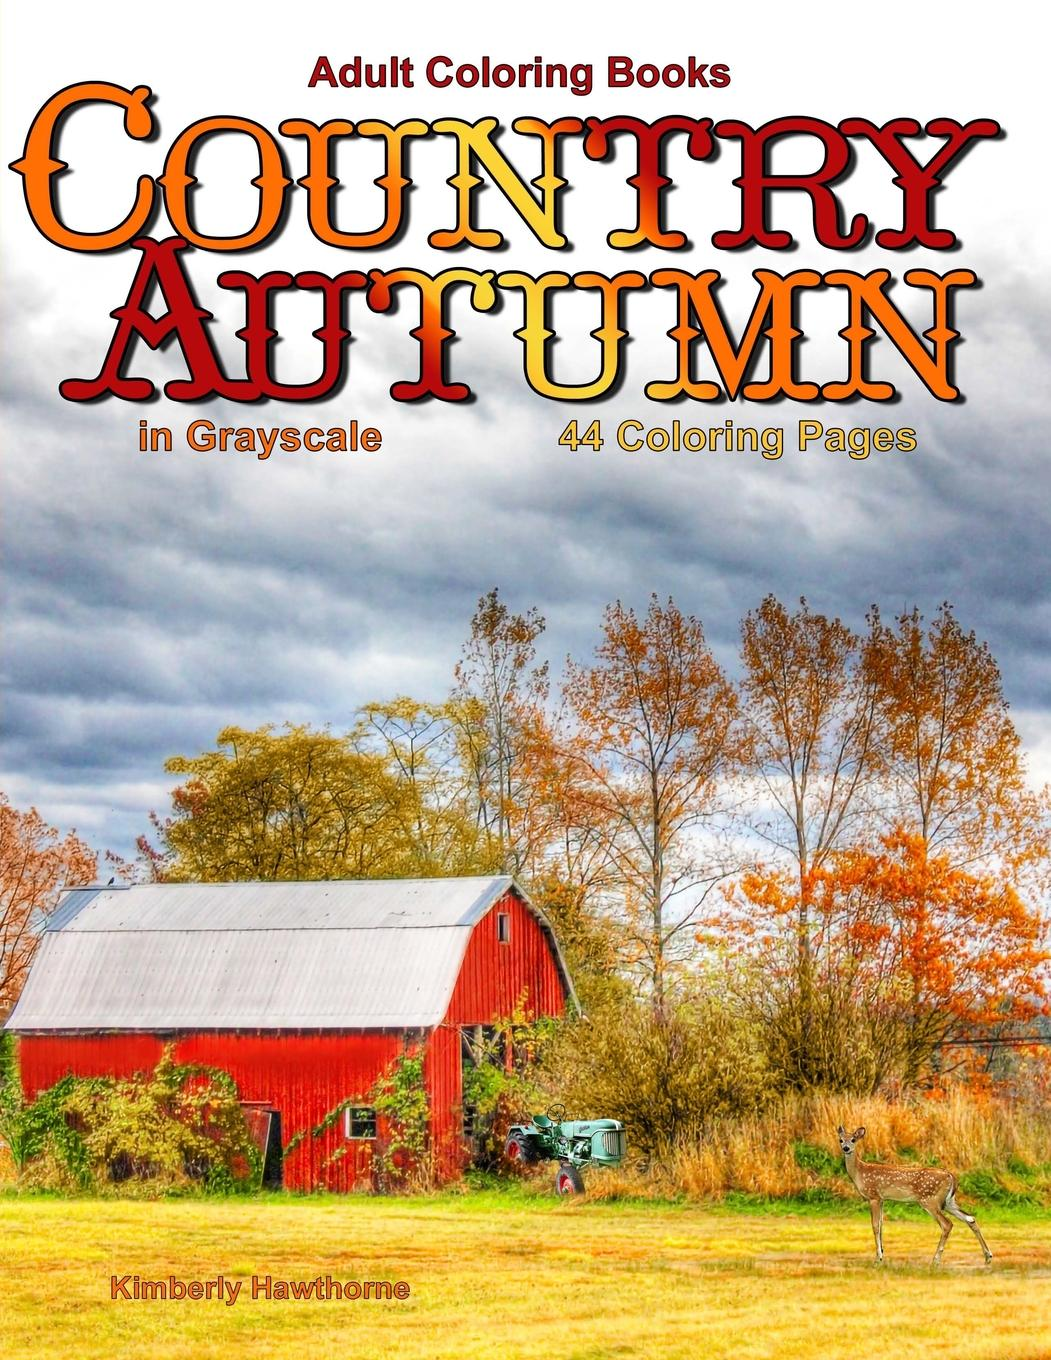 Adult Coloring Books: Country Autumn in Grayscale: 42 Coloring Pages of Autumn Country... by